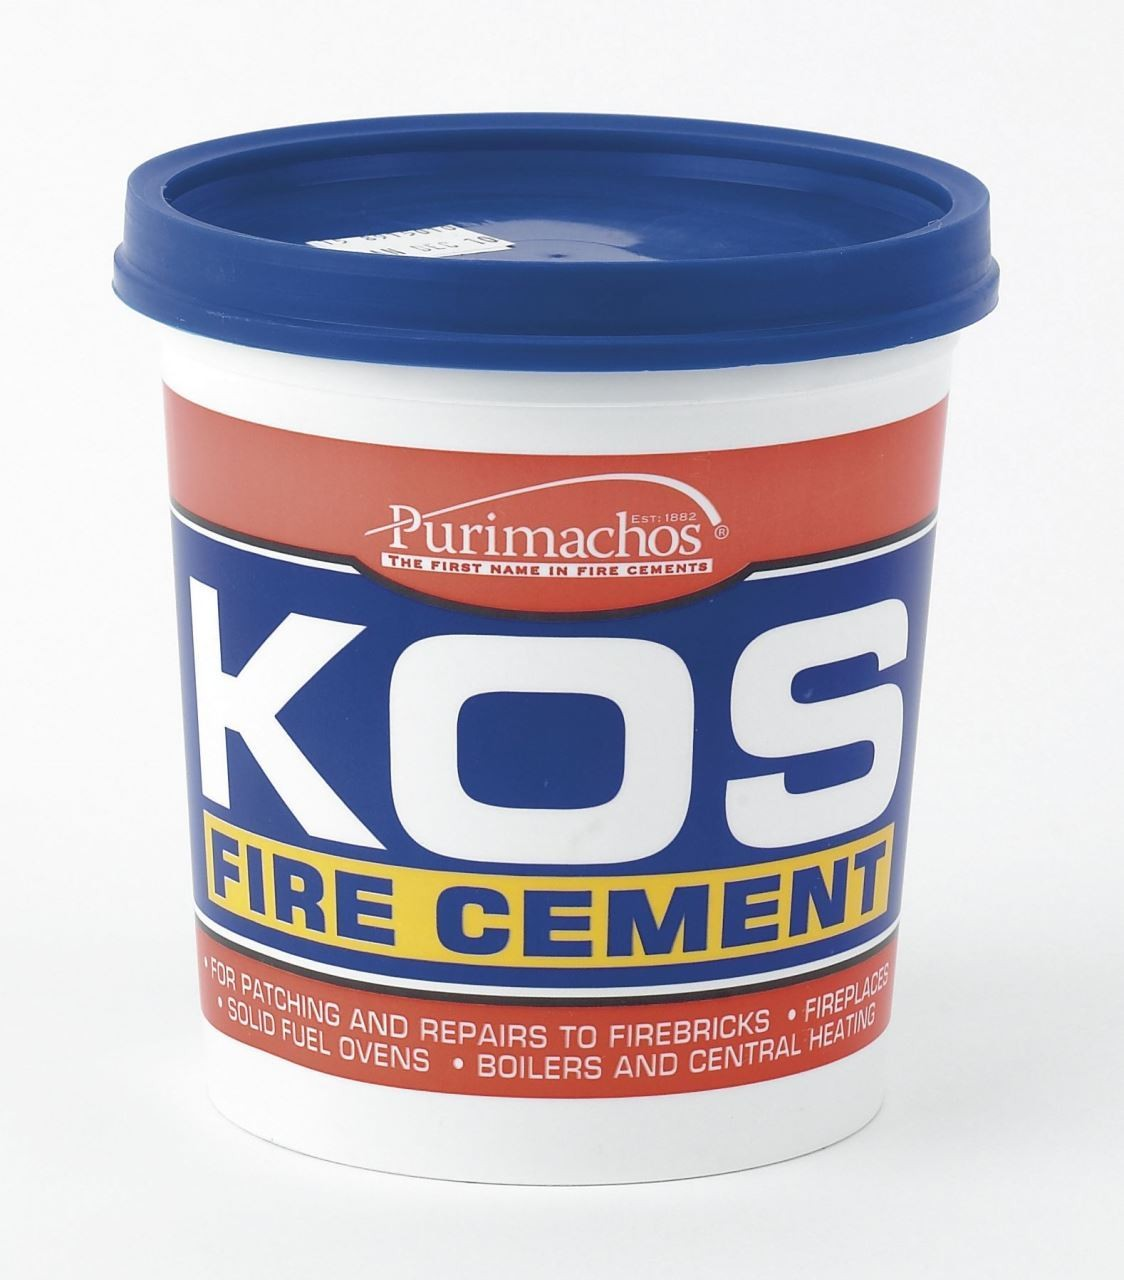 Large tub of fire cement